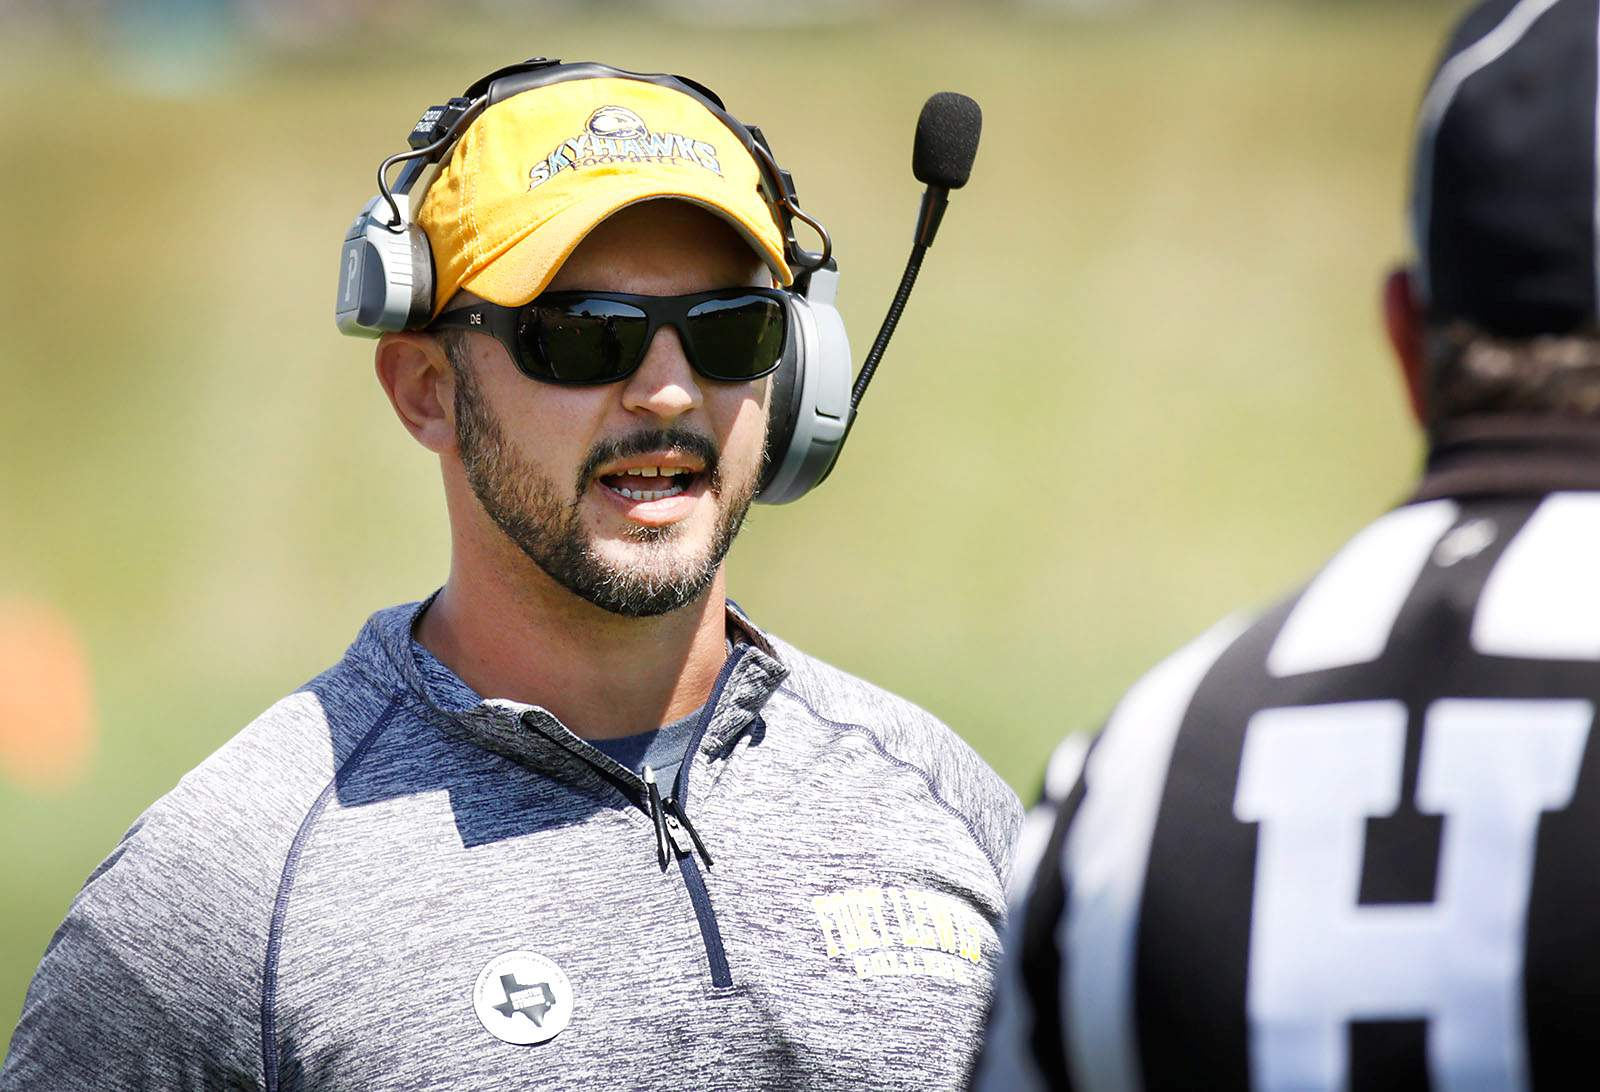 932105ff381 Joe Morris was named the head coach of Fort Lewis College s football team  Wednesday morning. Morris has led the Skyhawks to a 5-5 record as interim  head ...